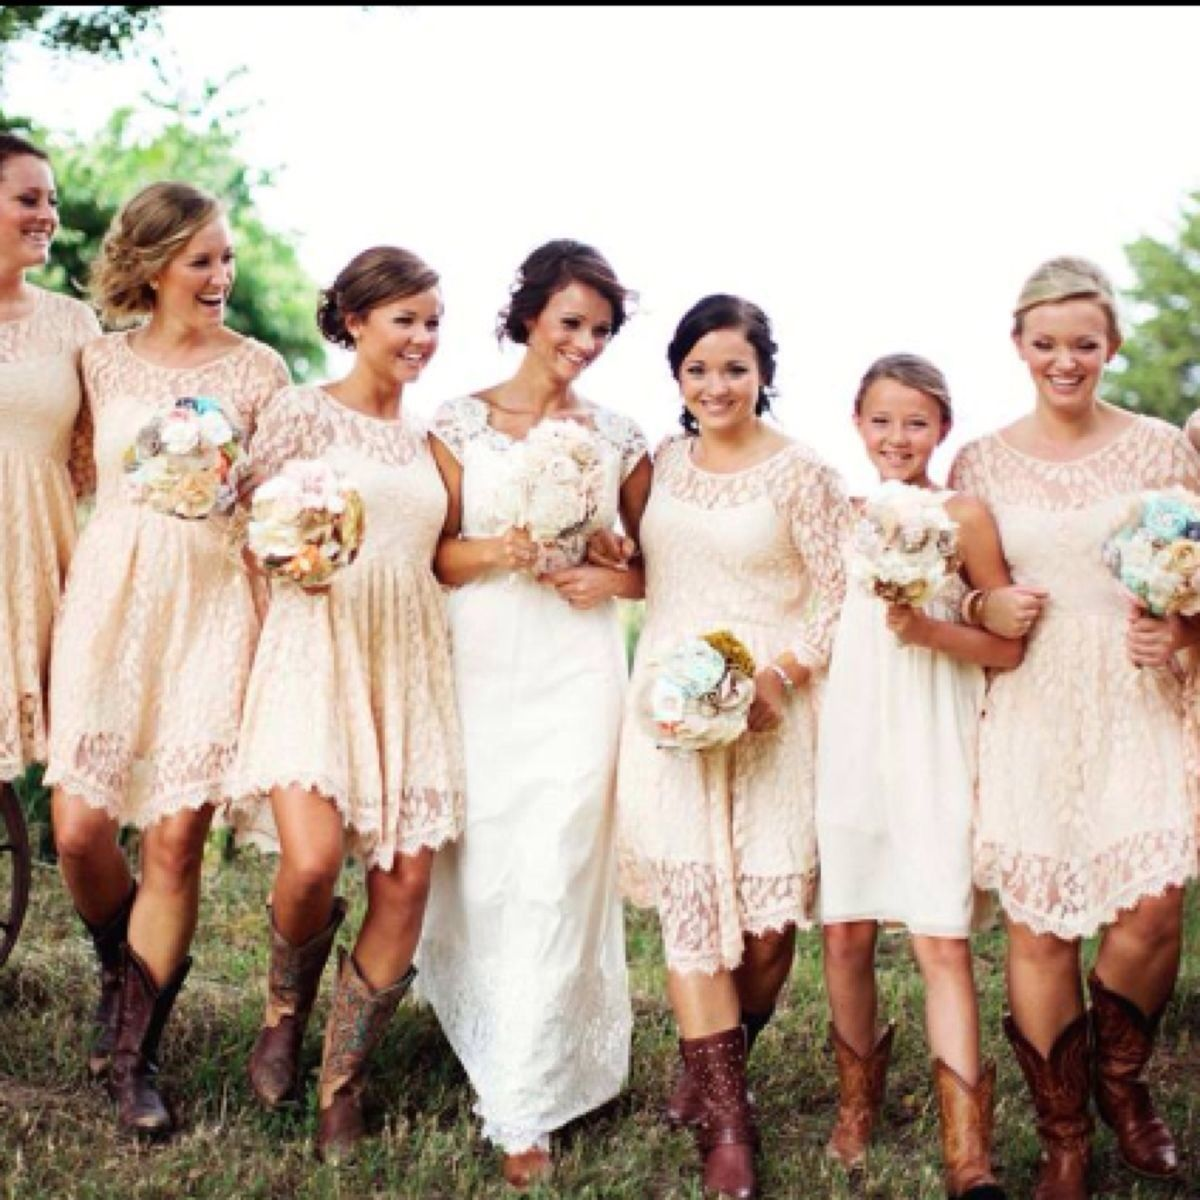 Country lace wedding dress with boots  Pretty country wedding  Married Life  Pinterest  Wedding and